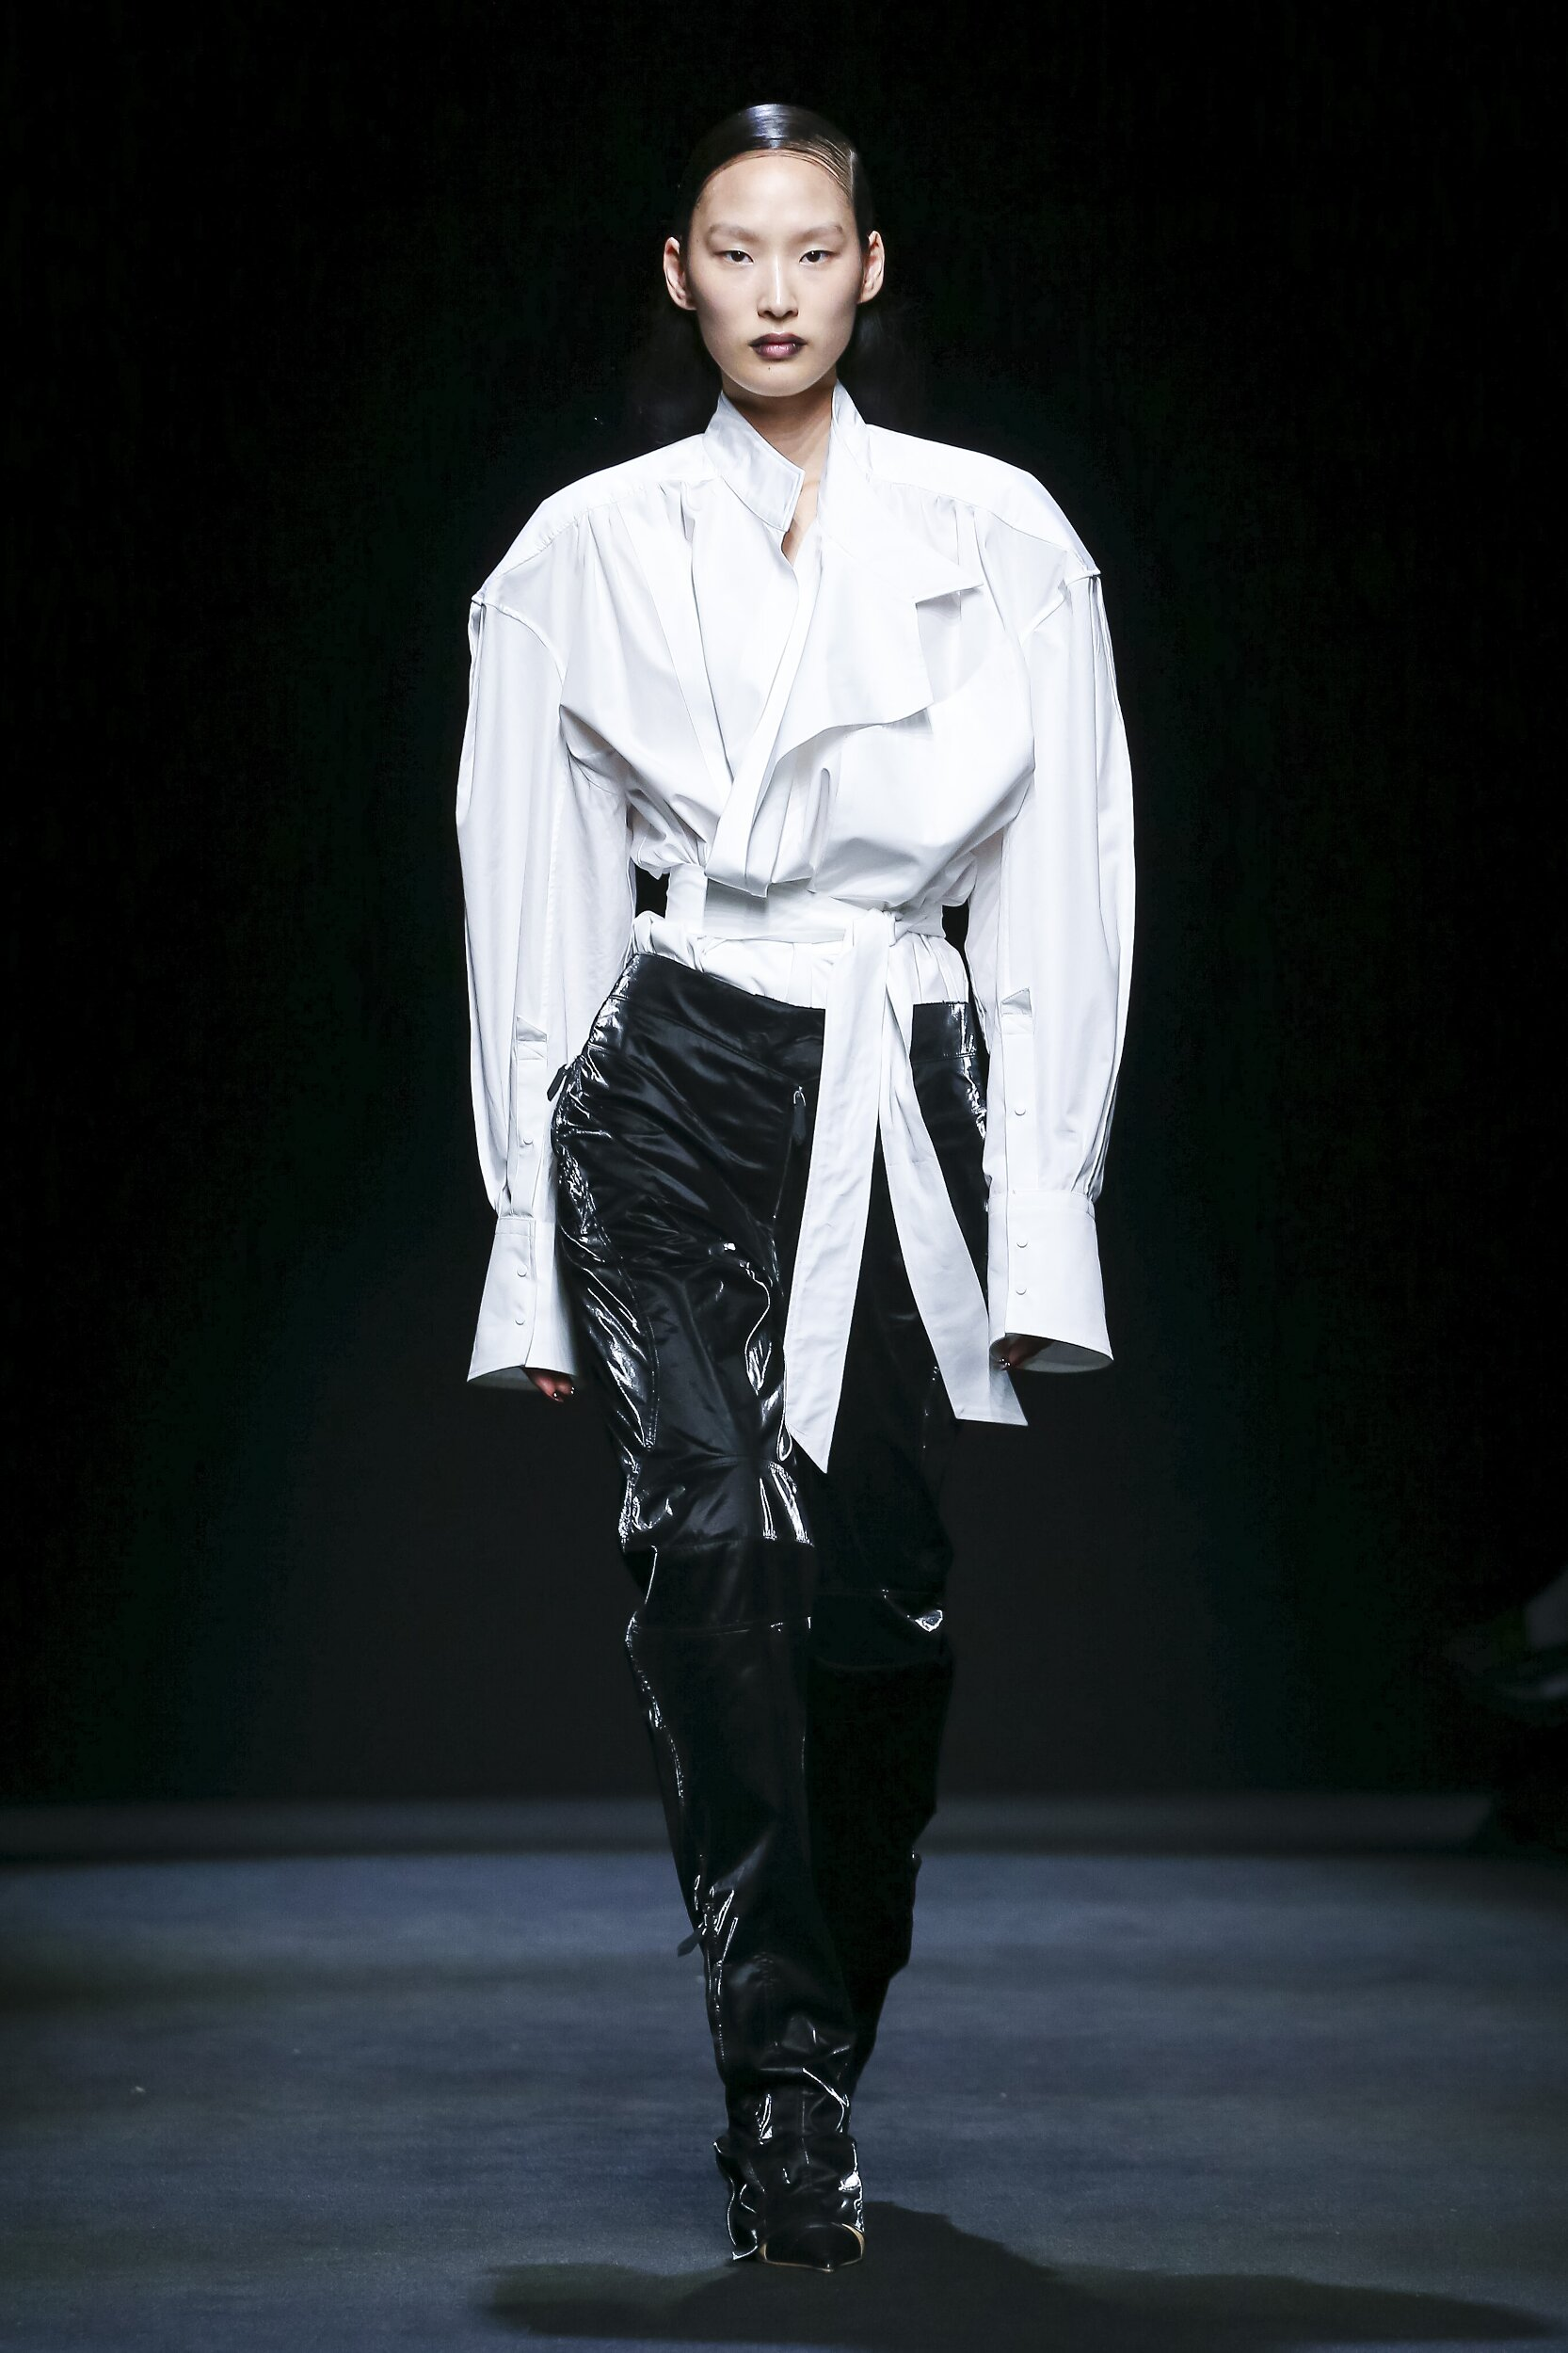 Runway Mugler Fall Winter 2020 Women's Collection Paris Fashion Week